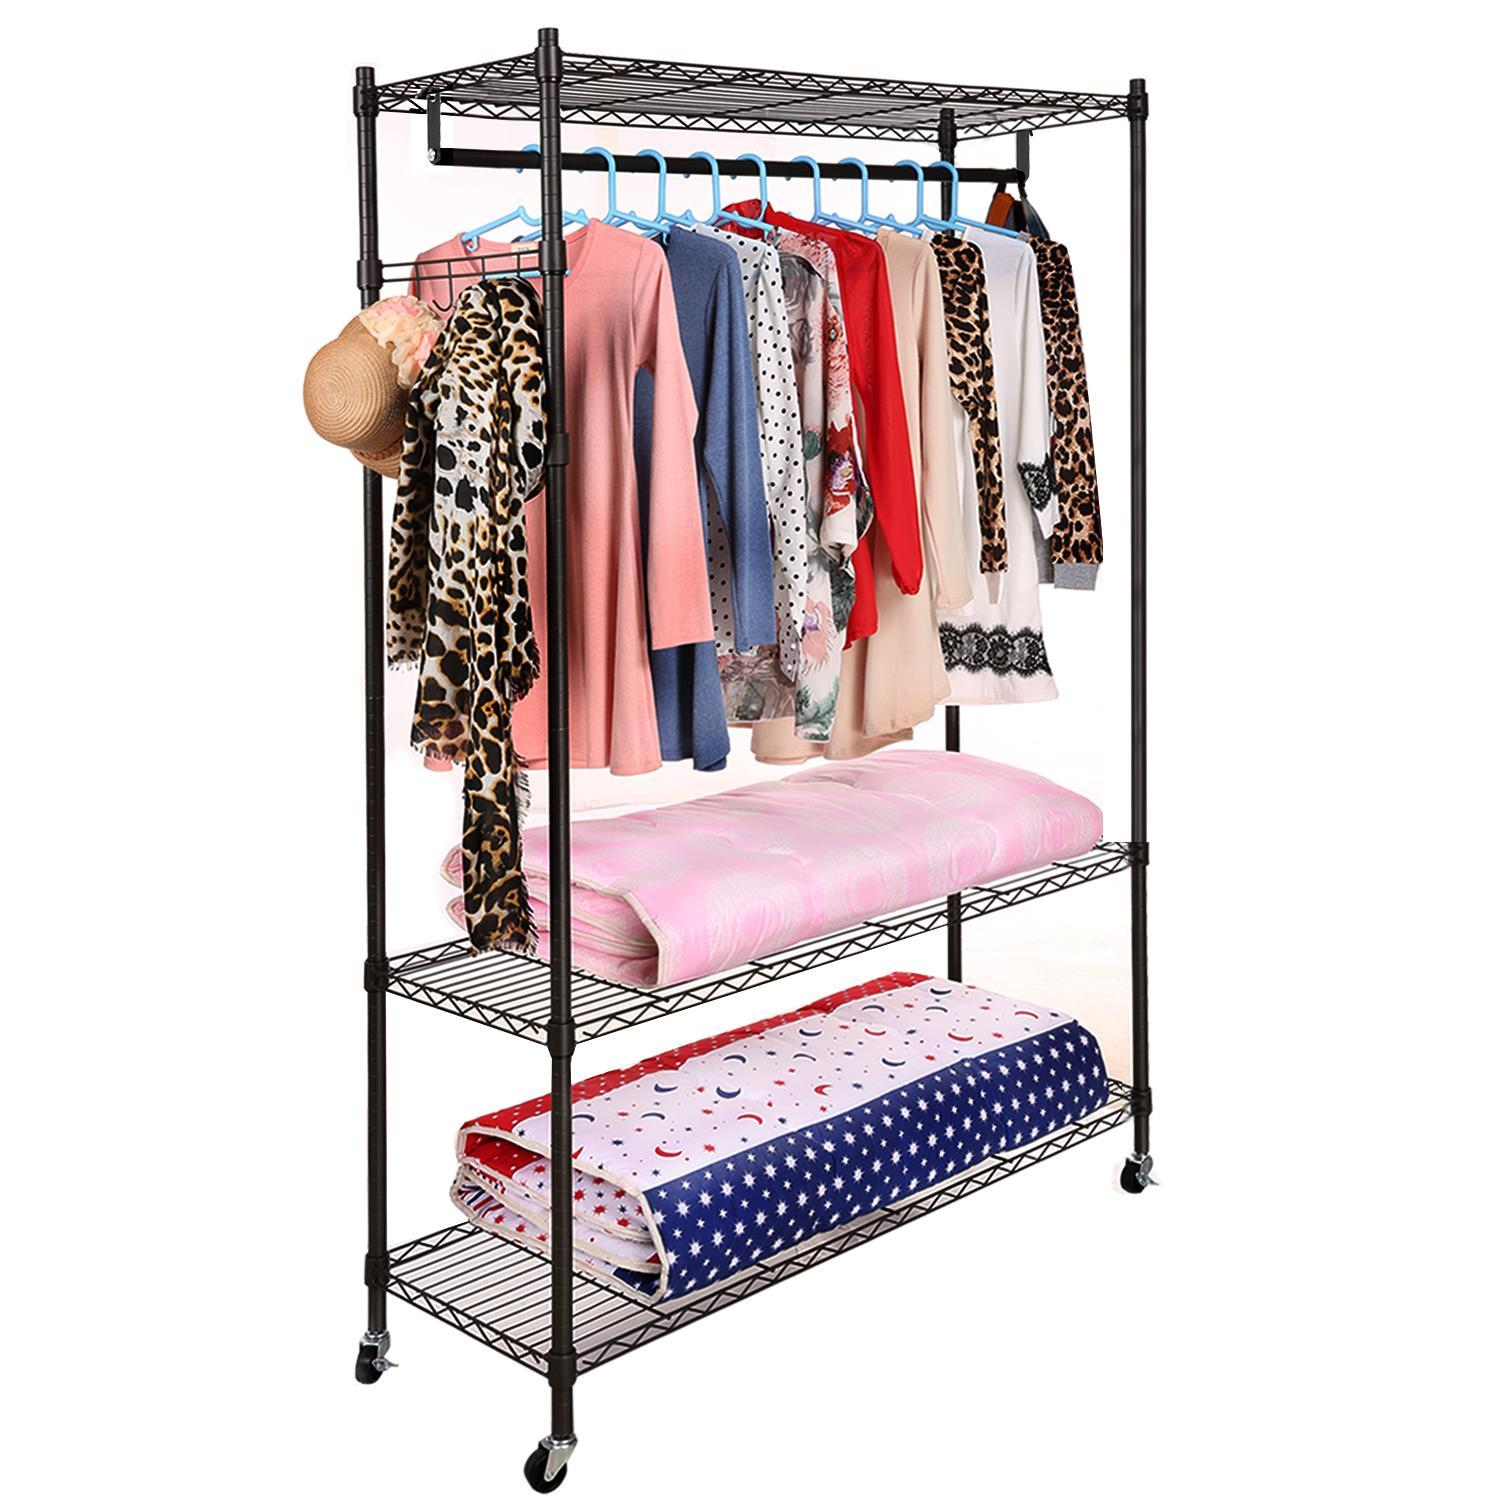 Adjustable height 3-Tier Closets Rack  Clothes Wardrobe Organizer Garment Rack Wire Shelving WSY